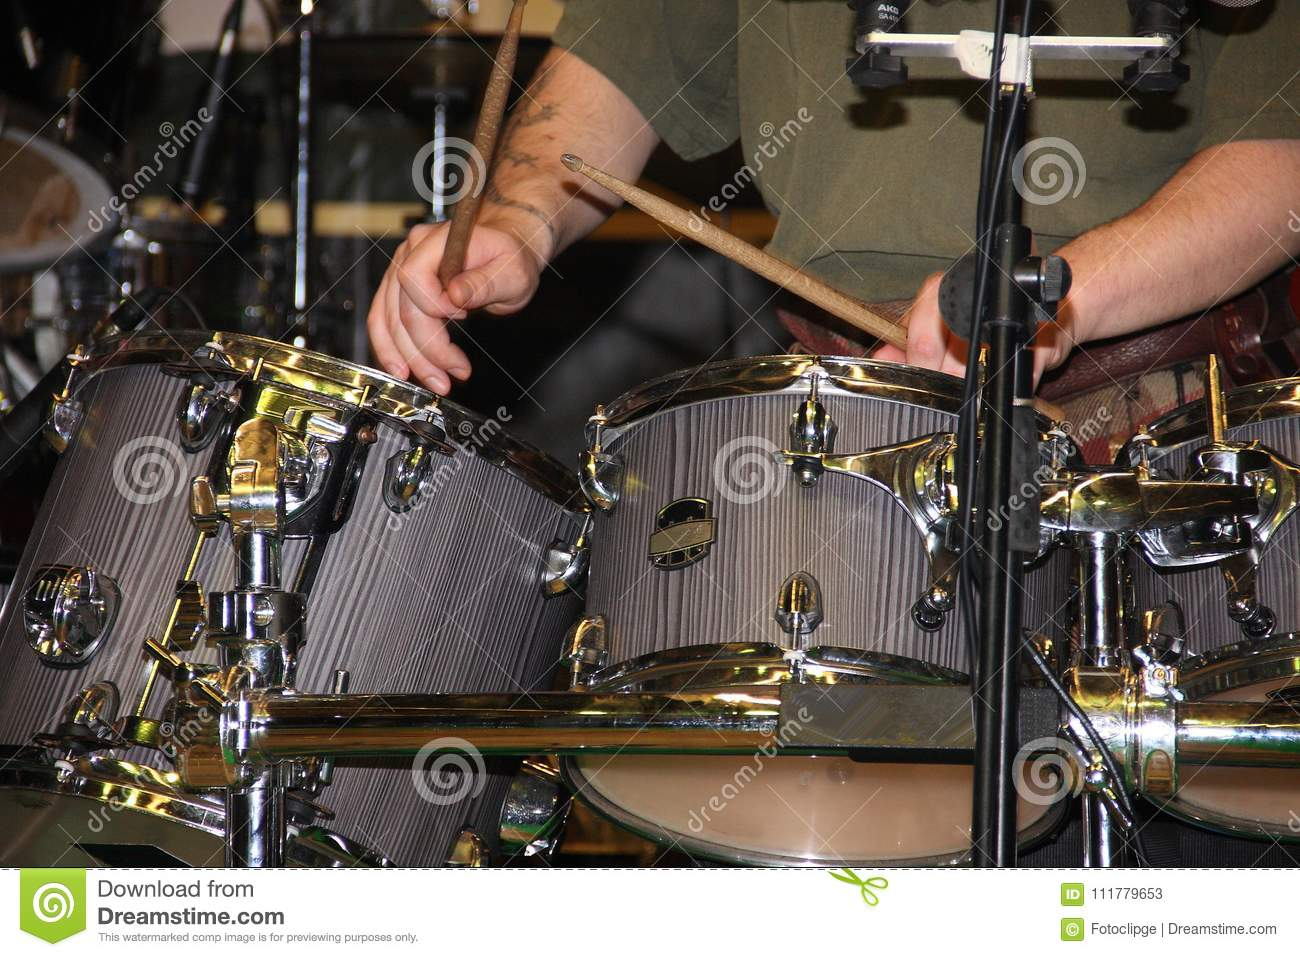 The hands of the drummer at work during the concert